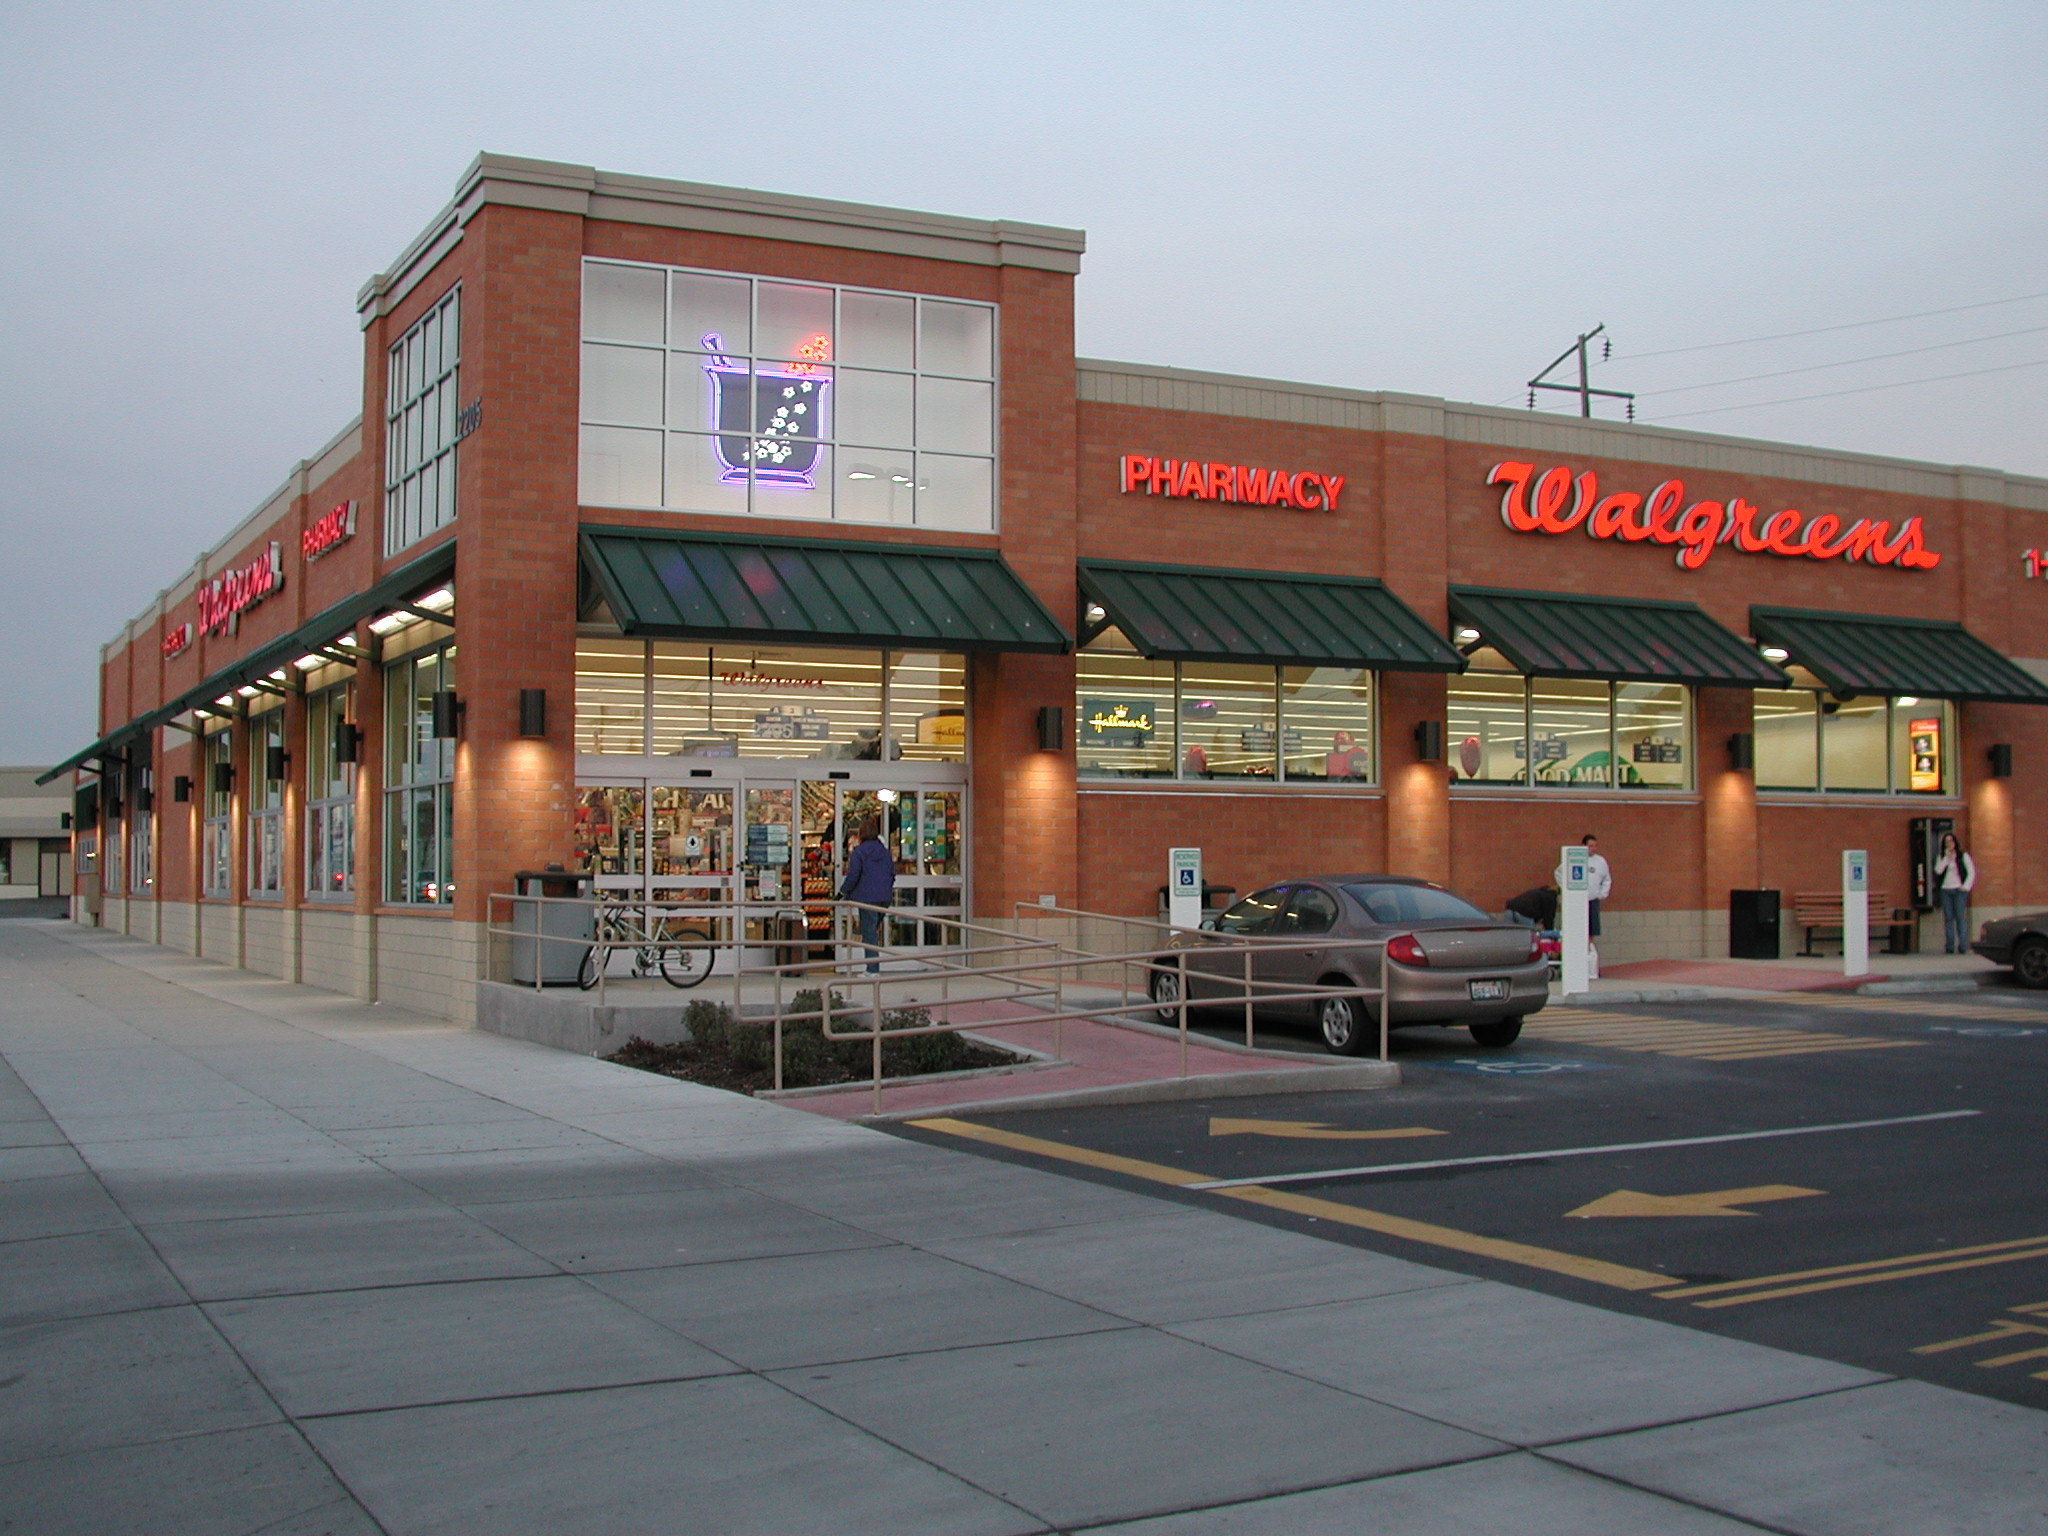 For your health, wellness, and pharmacy needs, a Walgreens near you can help. The drugstore has a history dating back to , making it a name customers trust. It is now part of Walgreens Boots Alliance. Based in Deerfield, Illinois, there are over 8, stores across the country. Use our Walgreens store locator to find one now.